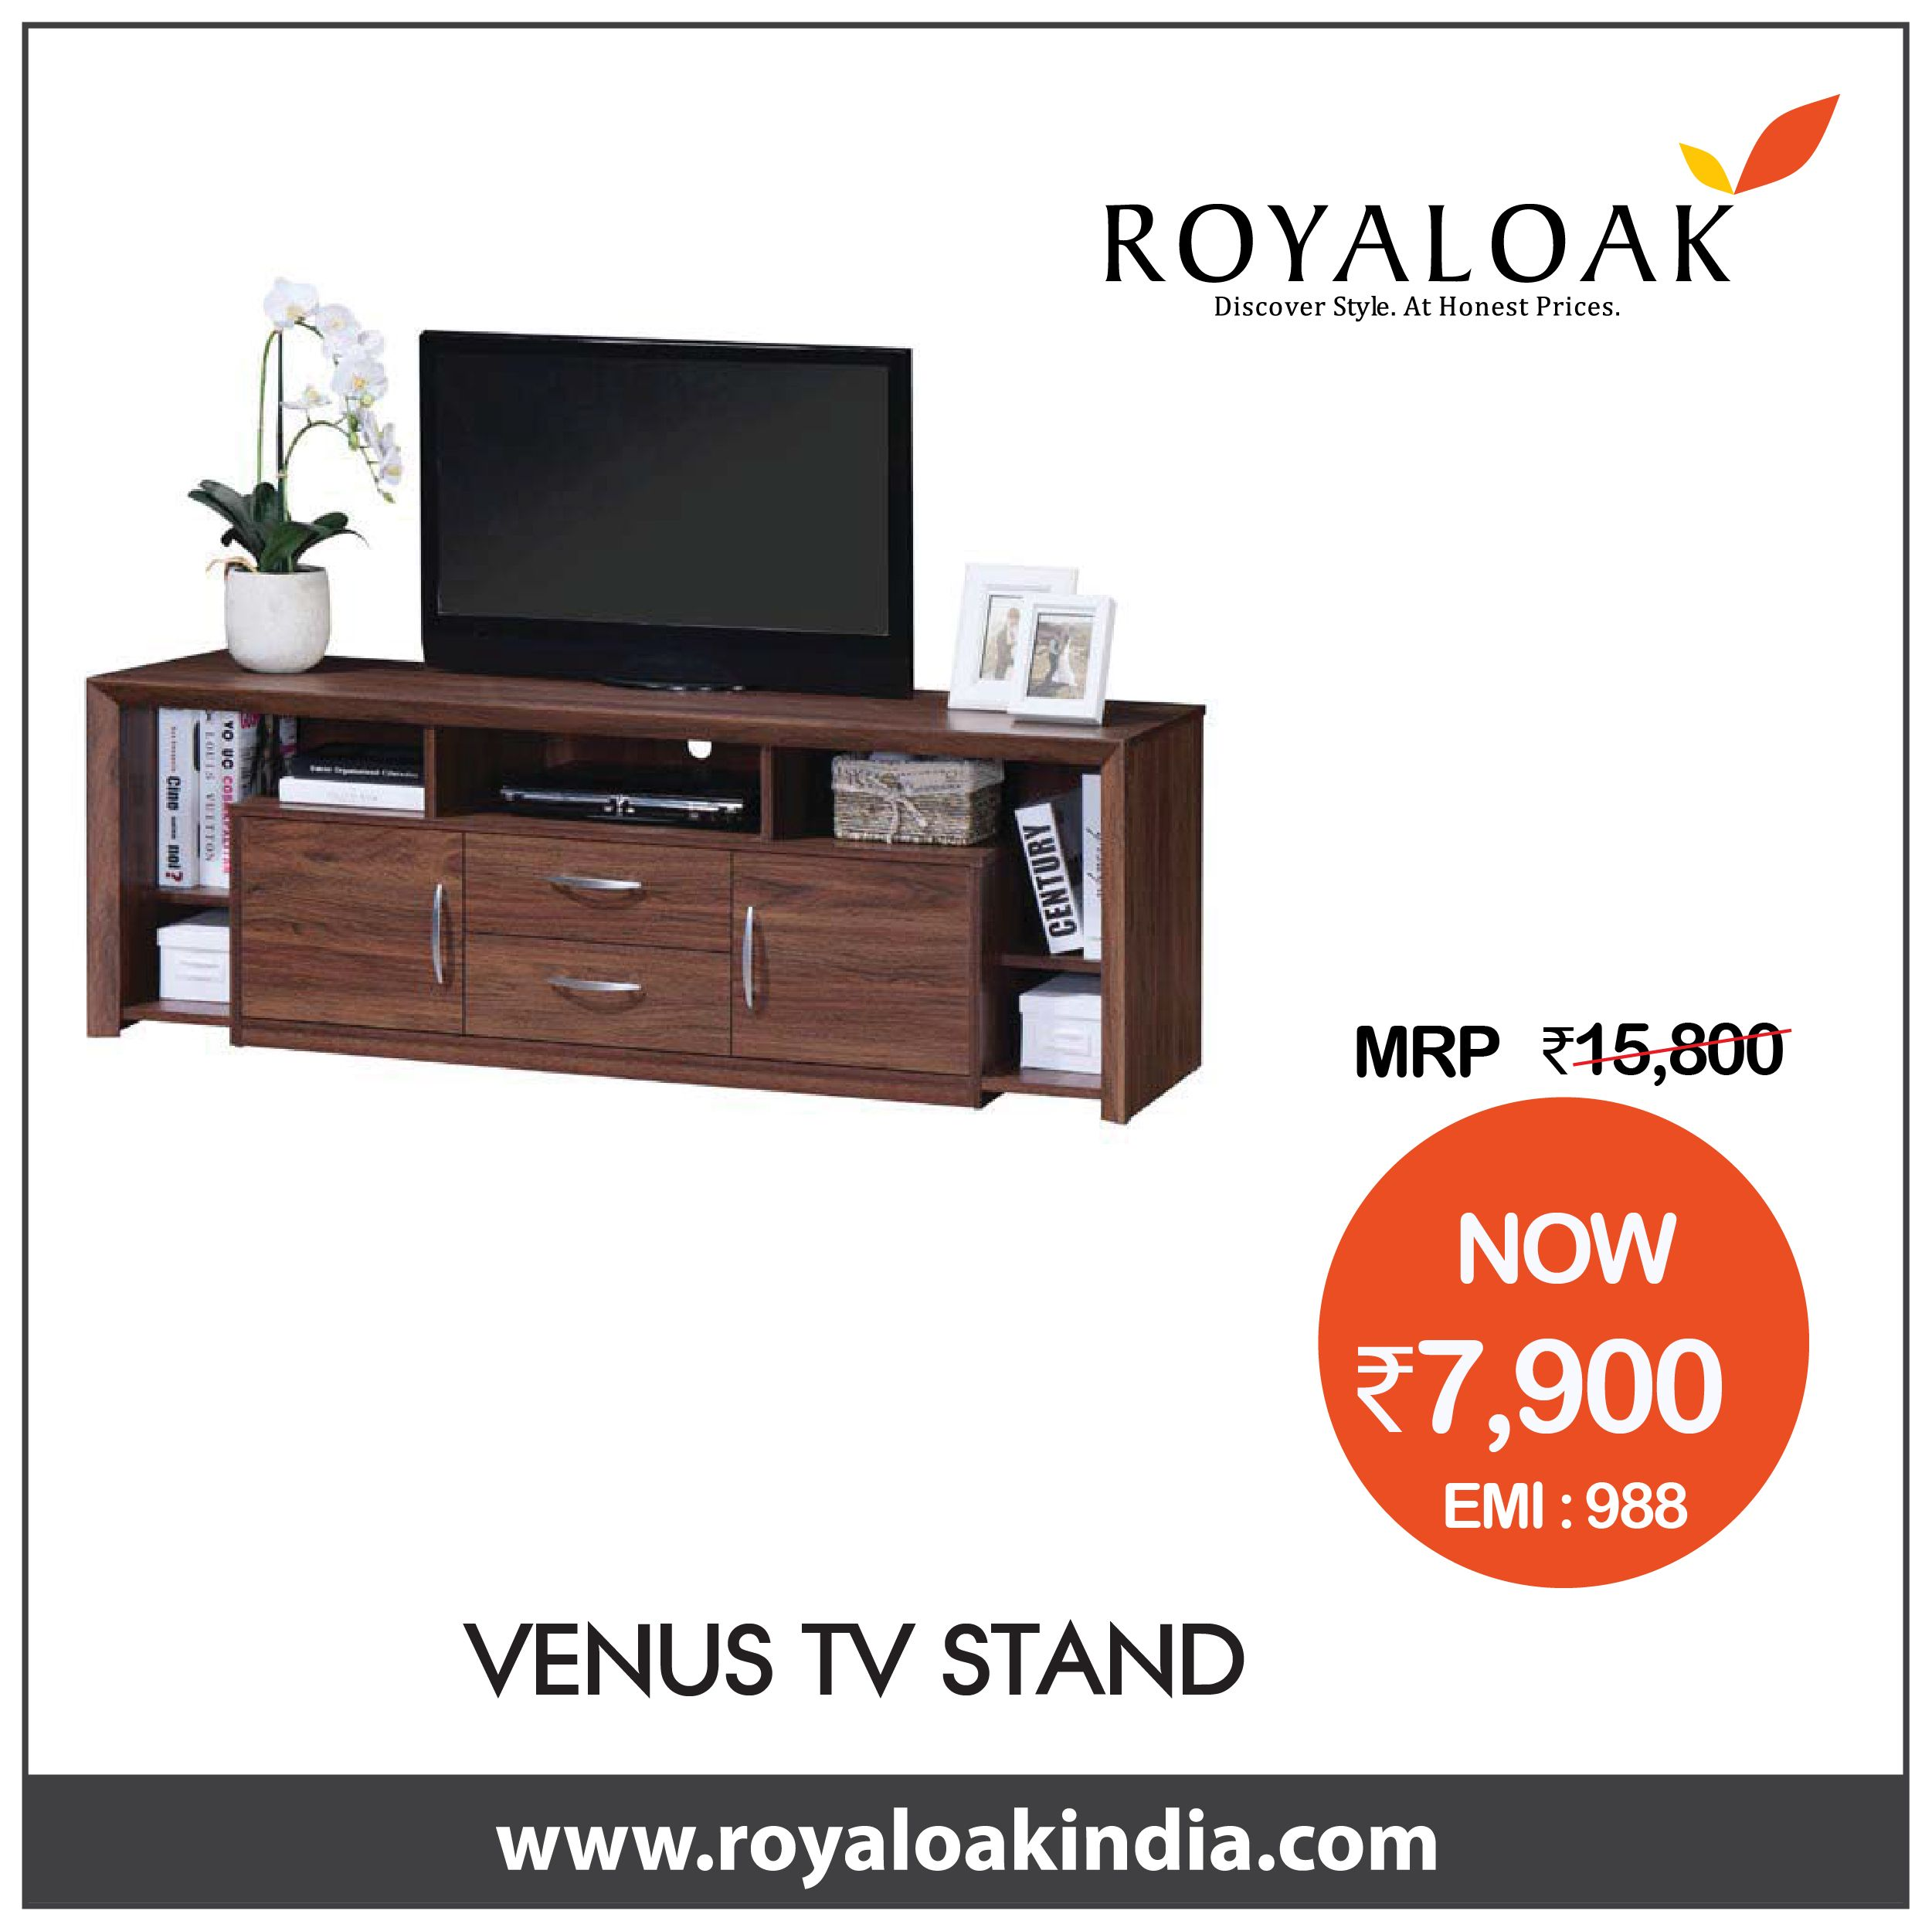 Pin by RoyalOak Furniture on TV STAND (With images